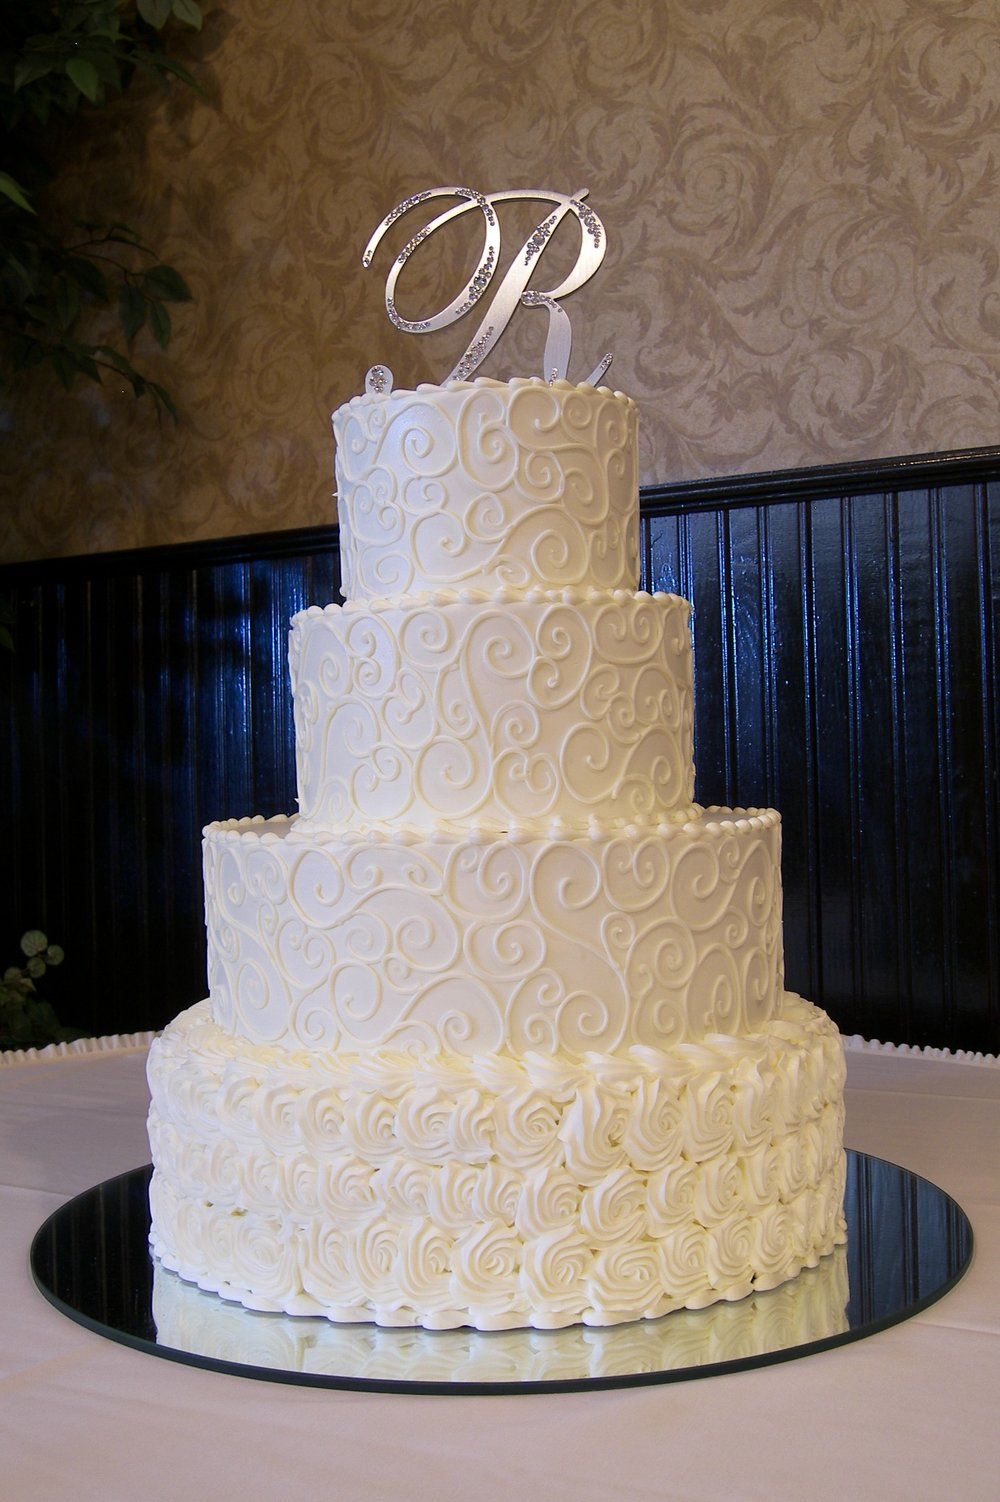 A Sampling Of Buttercream Wedding Cakes Weu0027ve Made